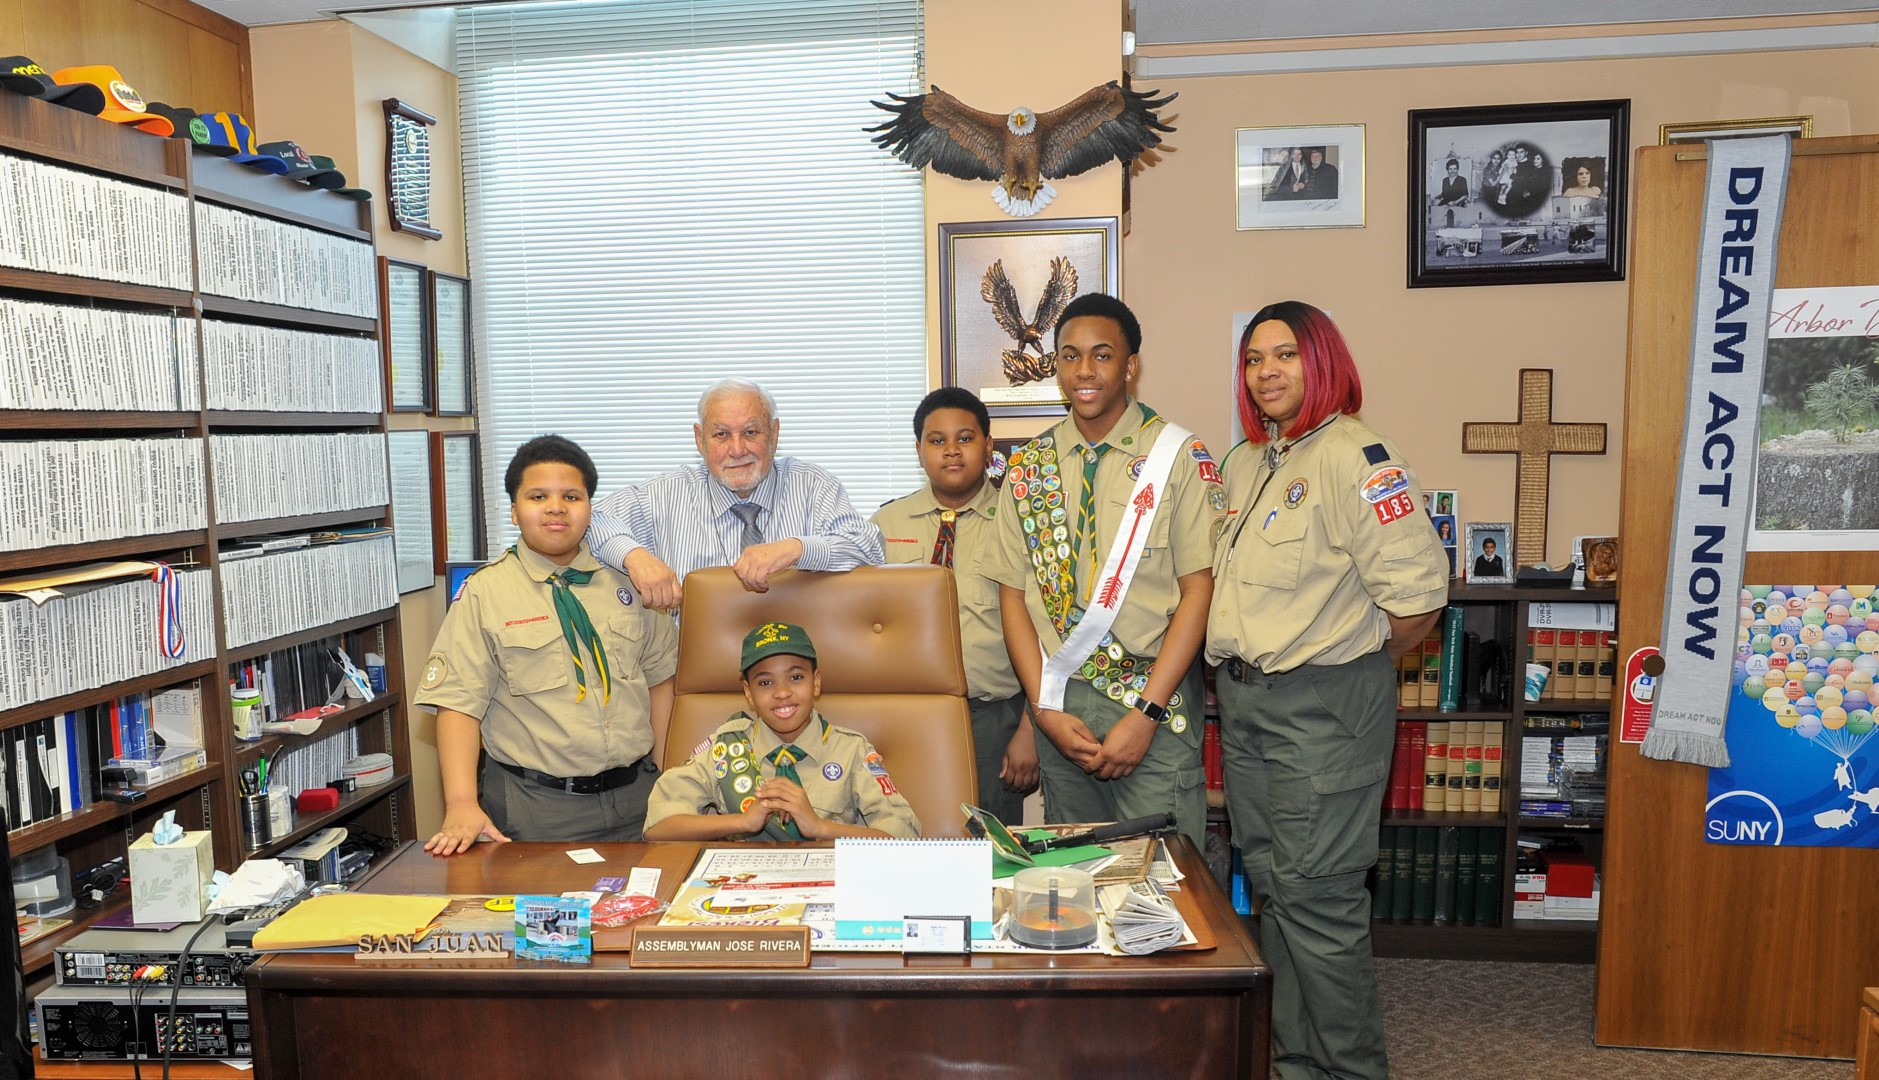 Meeting with Boy Scouts from Troop 185